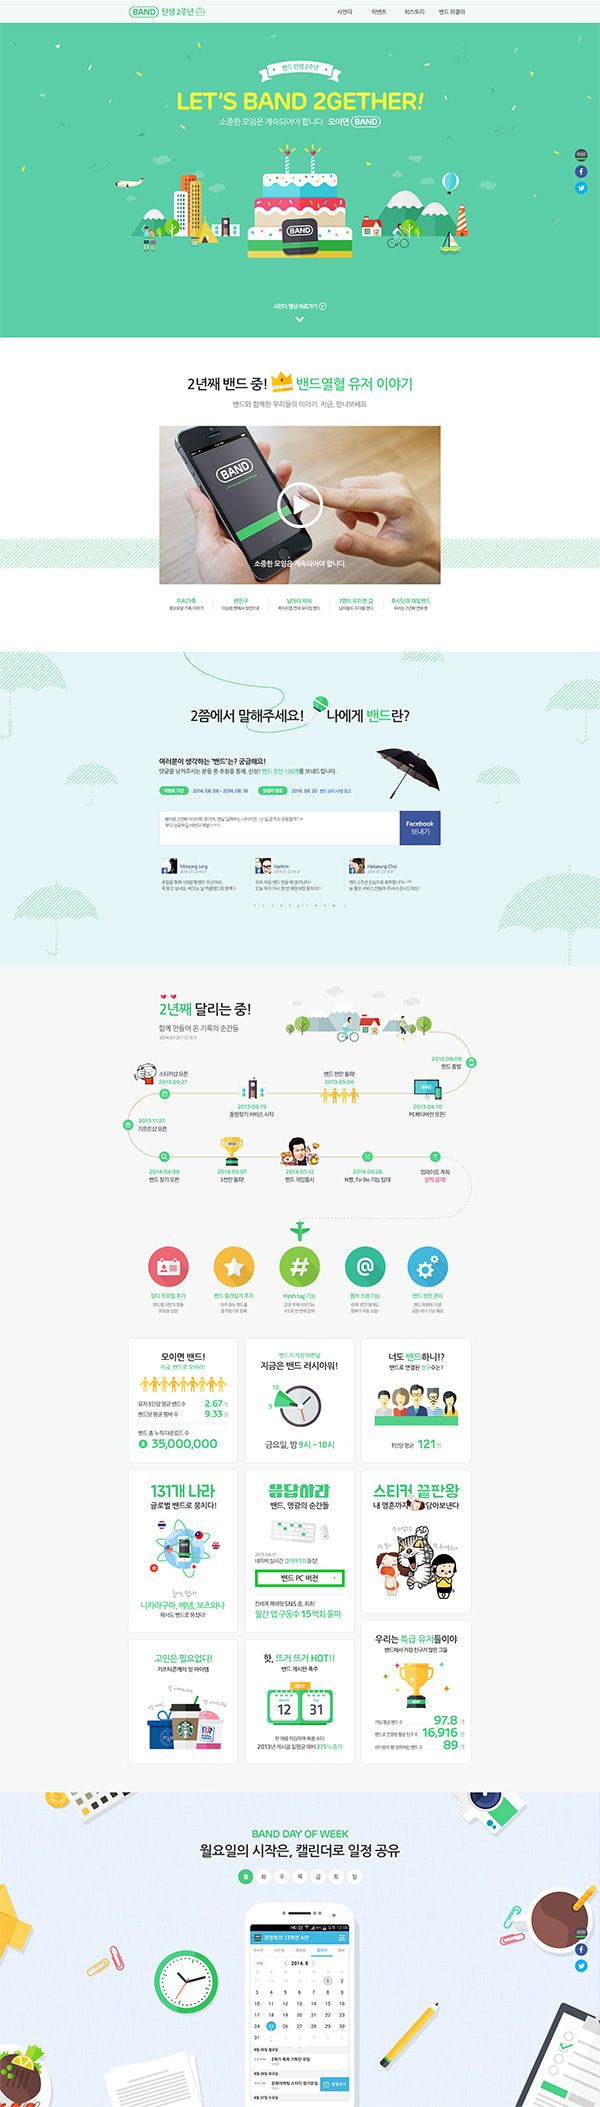 BAND App 2th Anniversary - Promotion by KwangYoung Han, via Behance